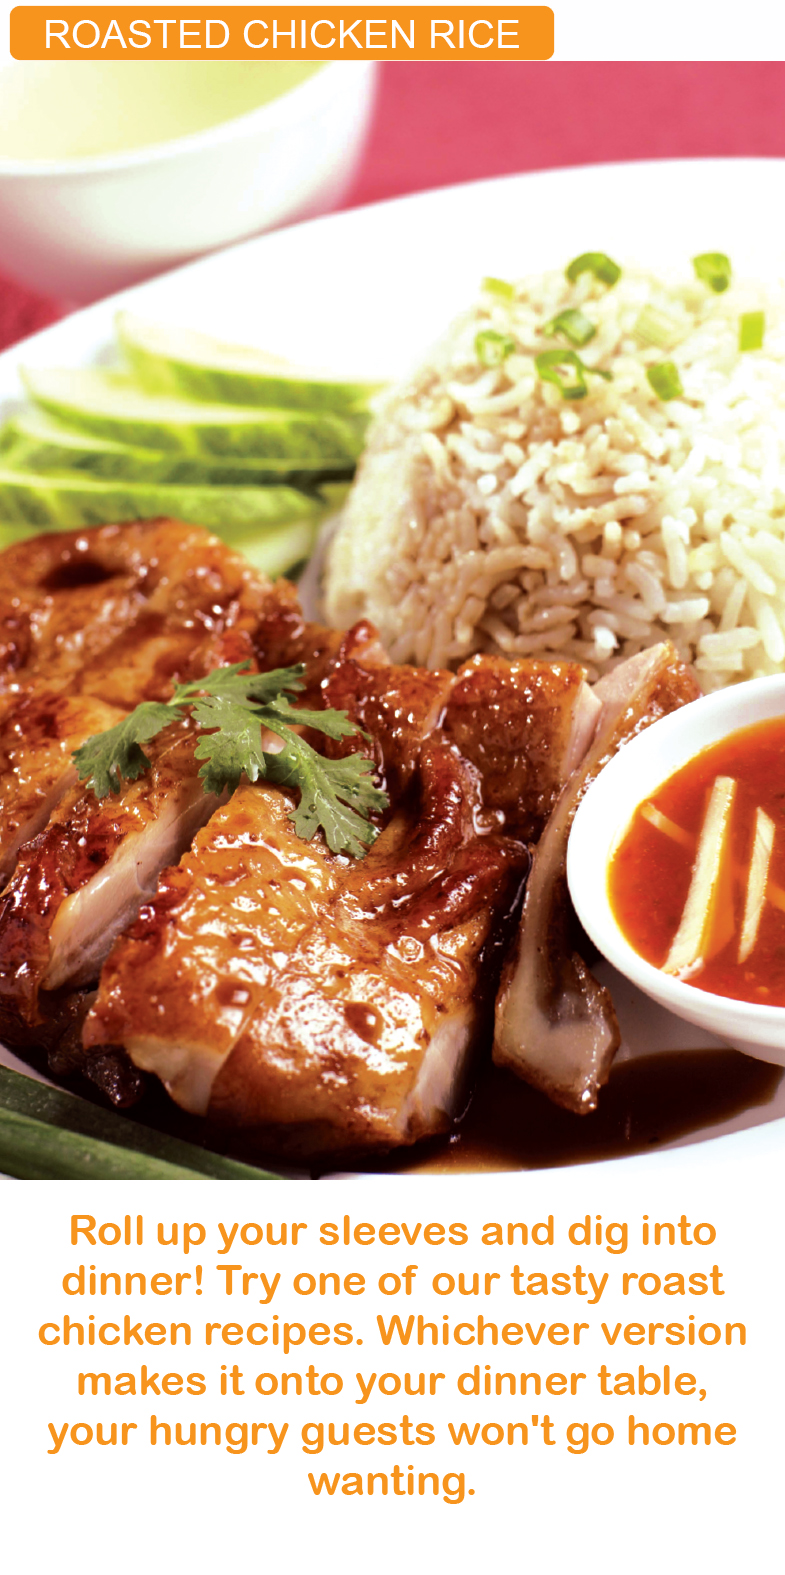 ROASTED CHICKEN RICE kfi sri kulai kinabalu food industries signature products malaysia  microwavable in minutes MEALS